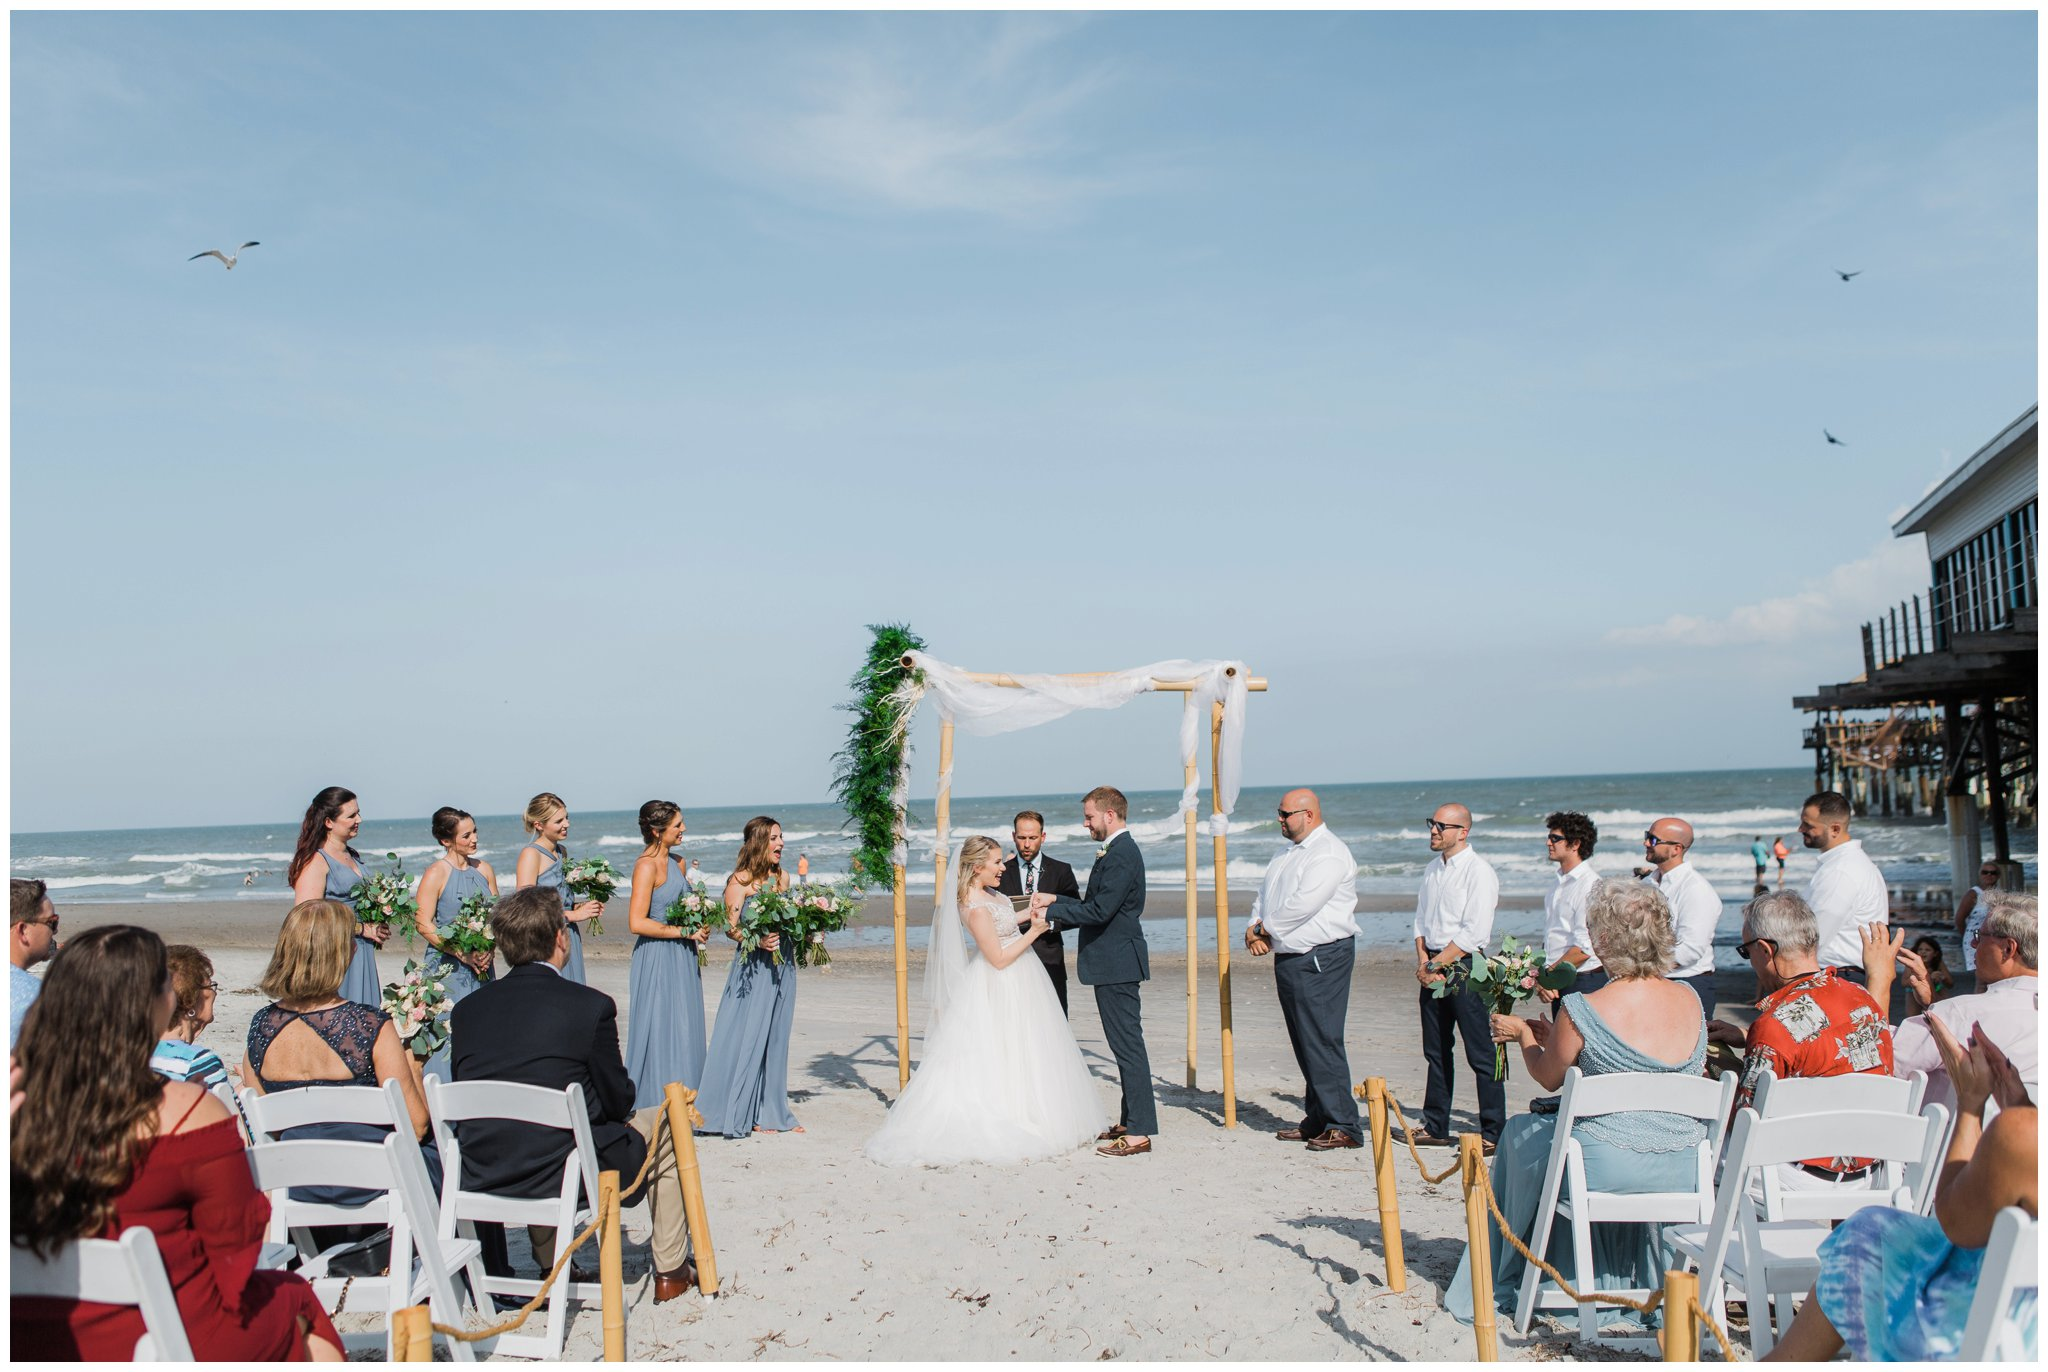 kaley and kevin-coco beach pier wedding-kimberly smith photography_0036.jpg